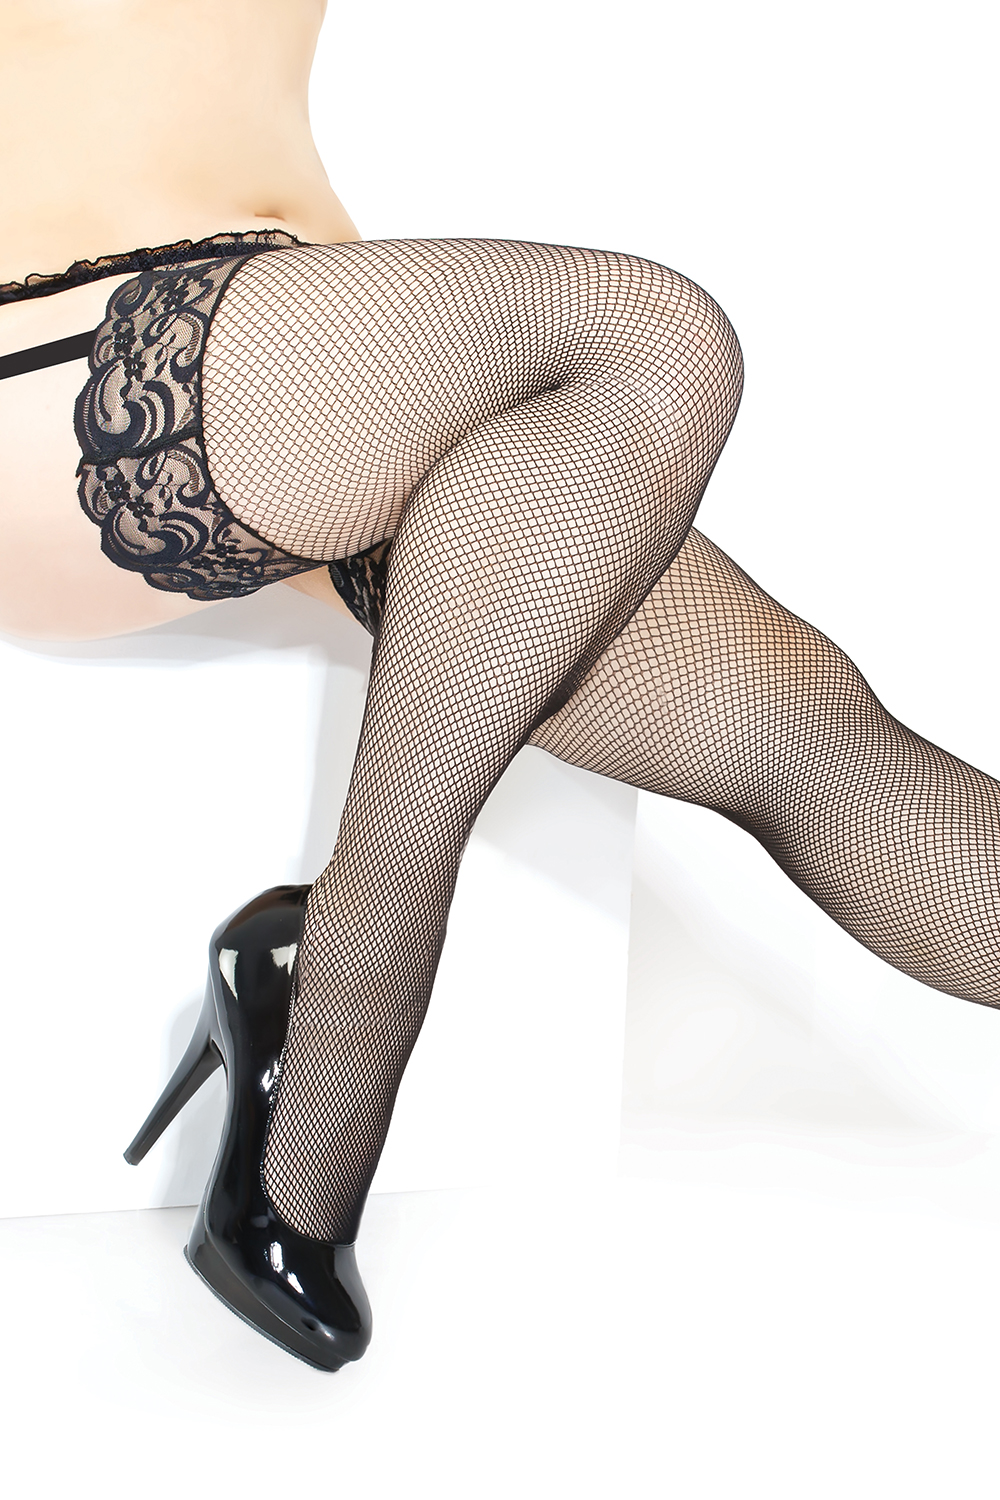 Classic fishnet thigh high stockings lace top 1898 Edmonton